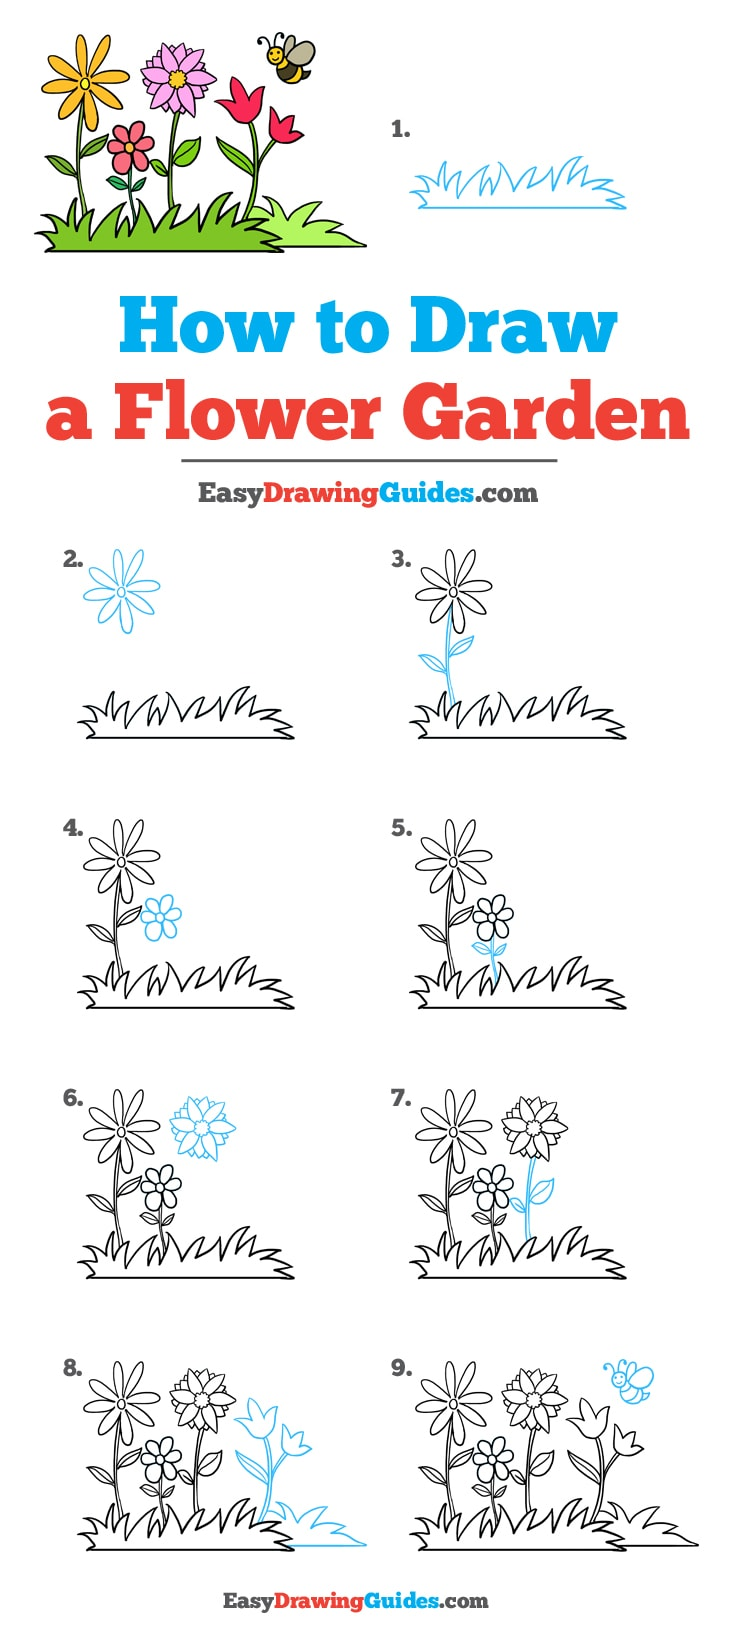 How to Draw a Flower Garden: Step by Step Tutorial